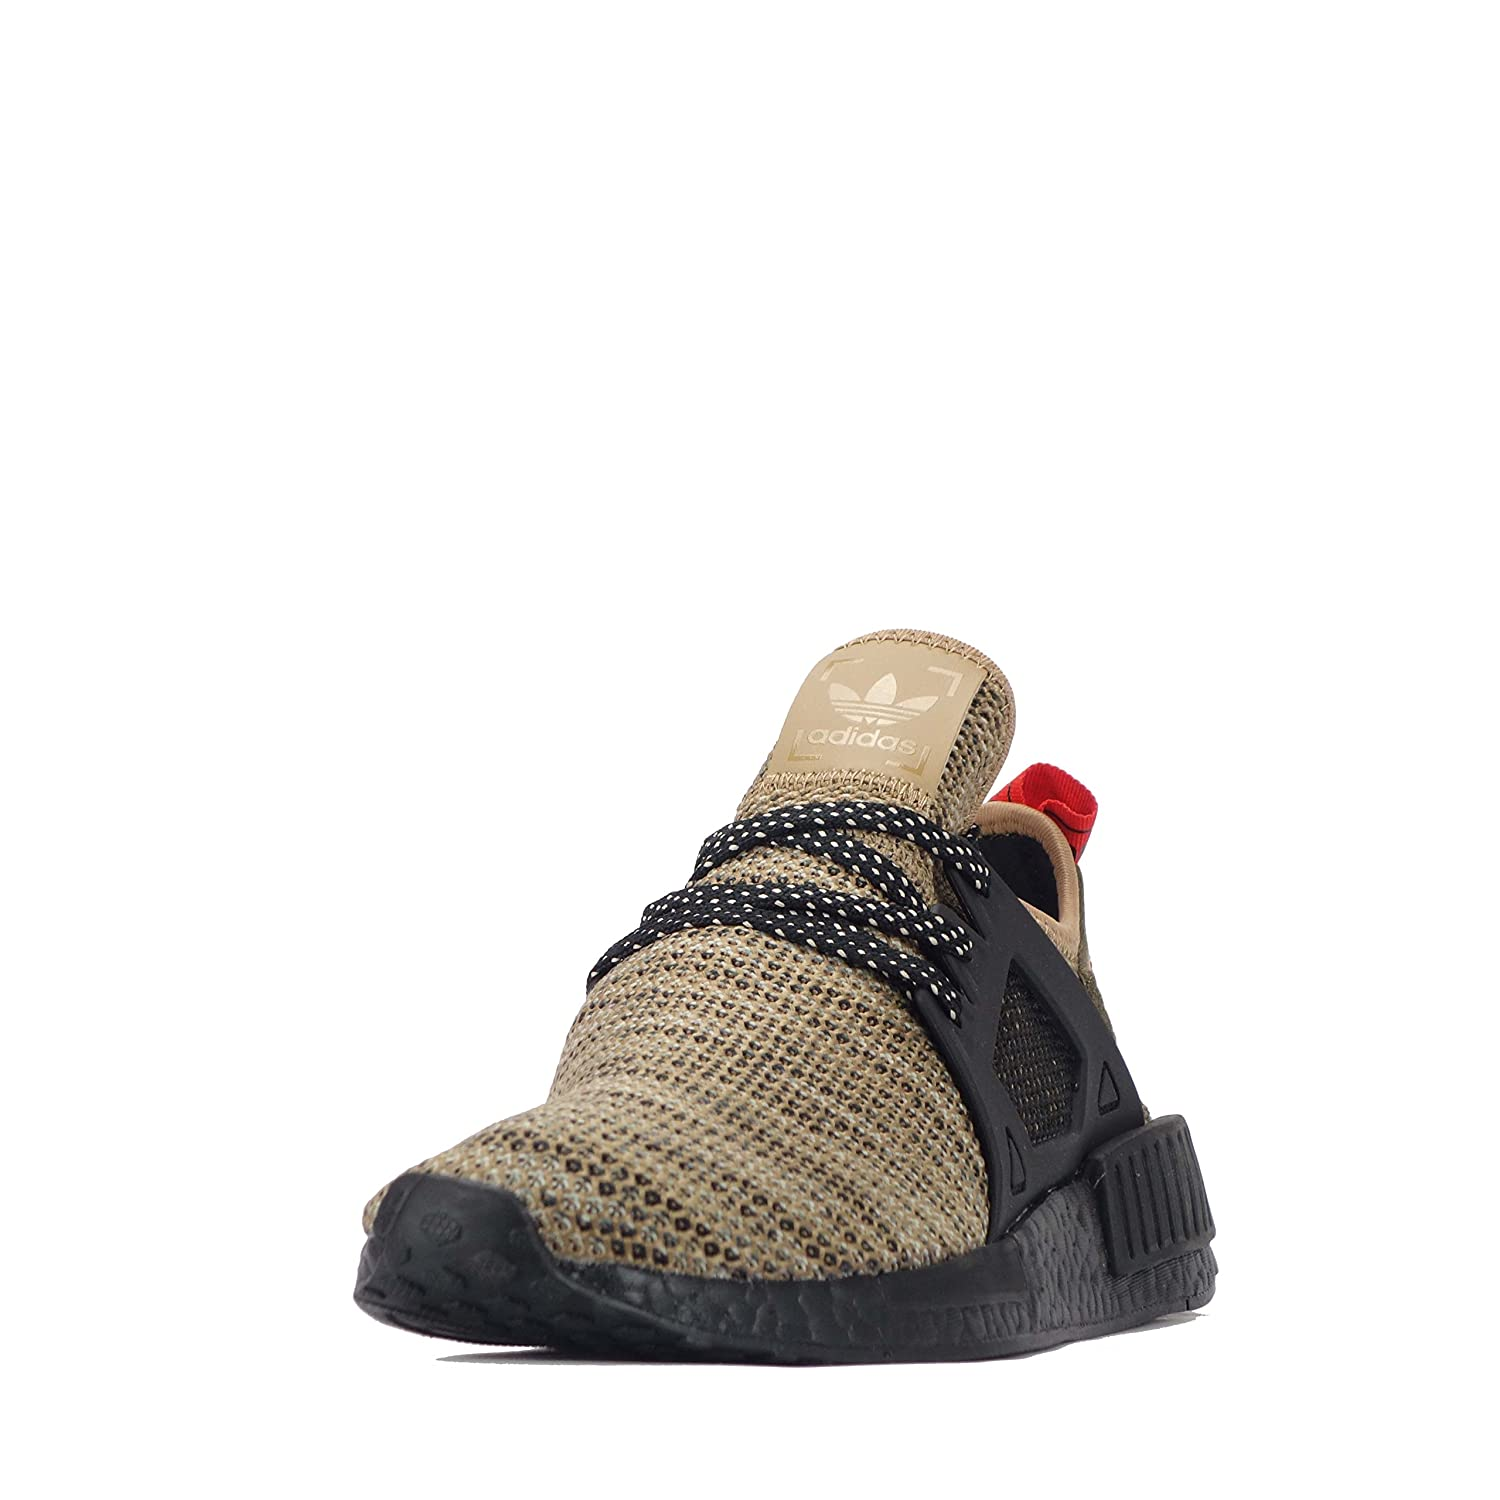 adidas Adidas NMD xr1, Baskets Mode pour Homme Cardboard Noir Rouge